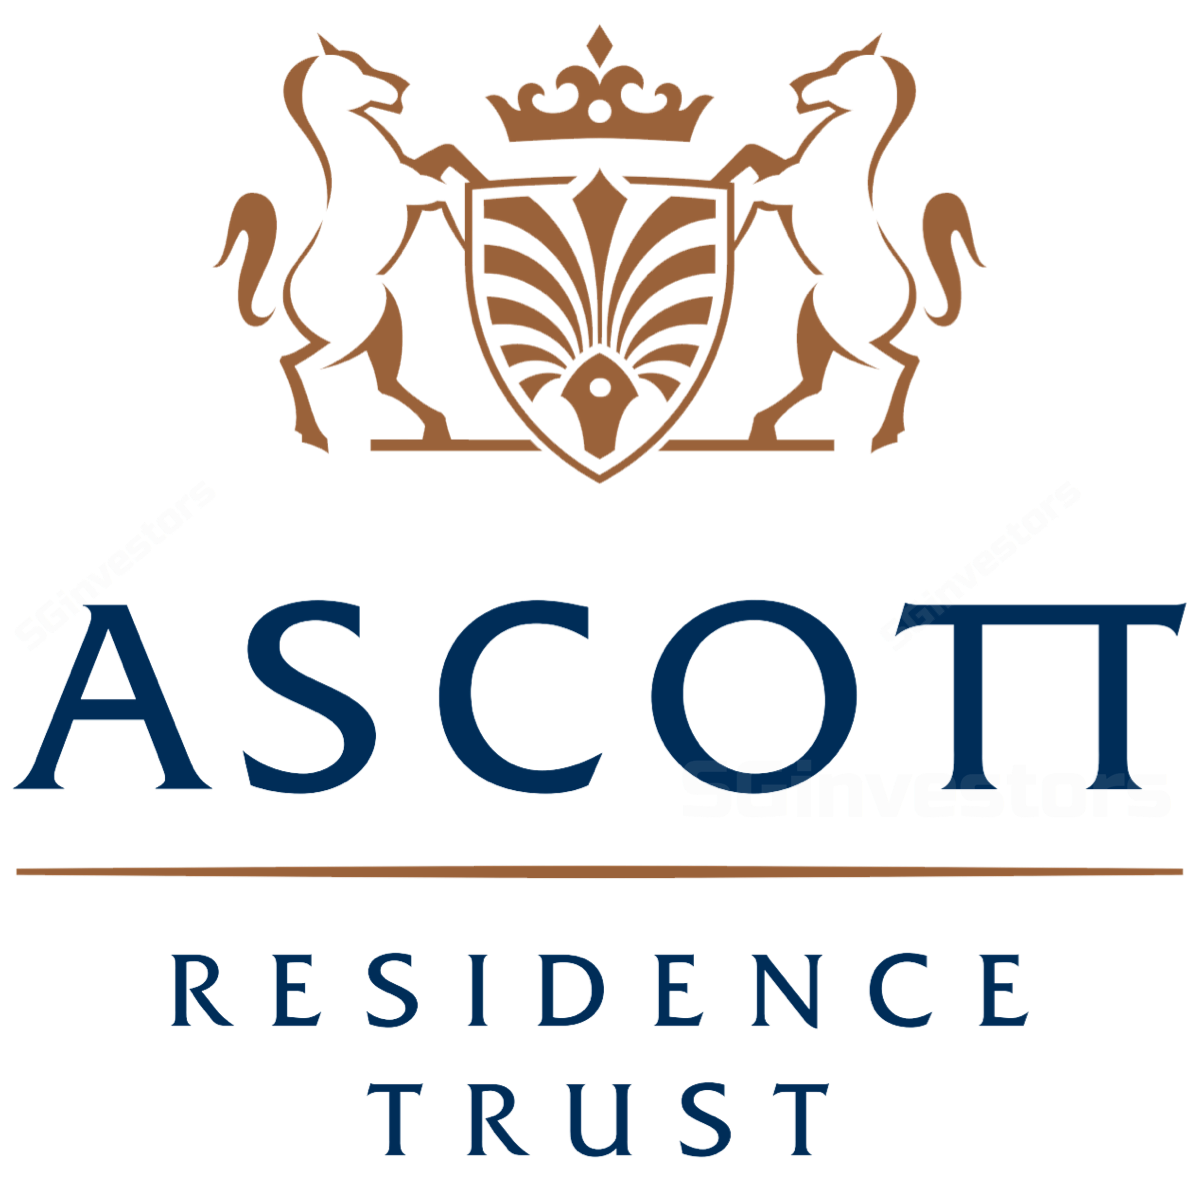 Ascott Residence Trust - OCBC Investment 2017-04-06: Fairly priced; trading at 6.8% FY18F yield